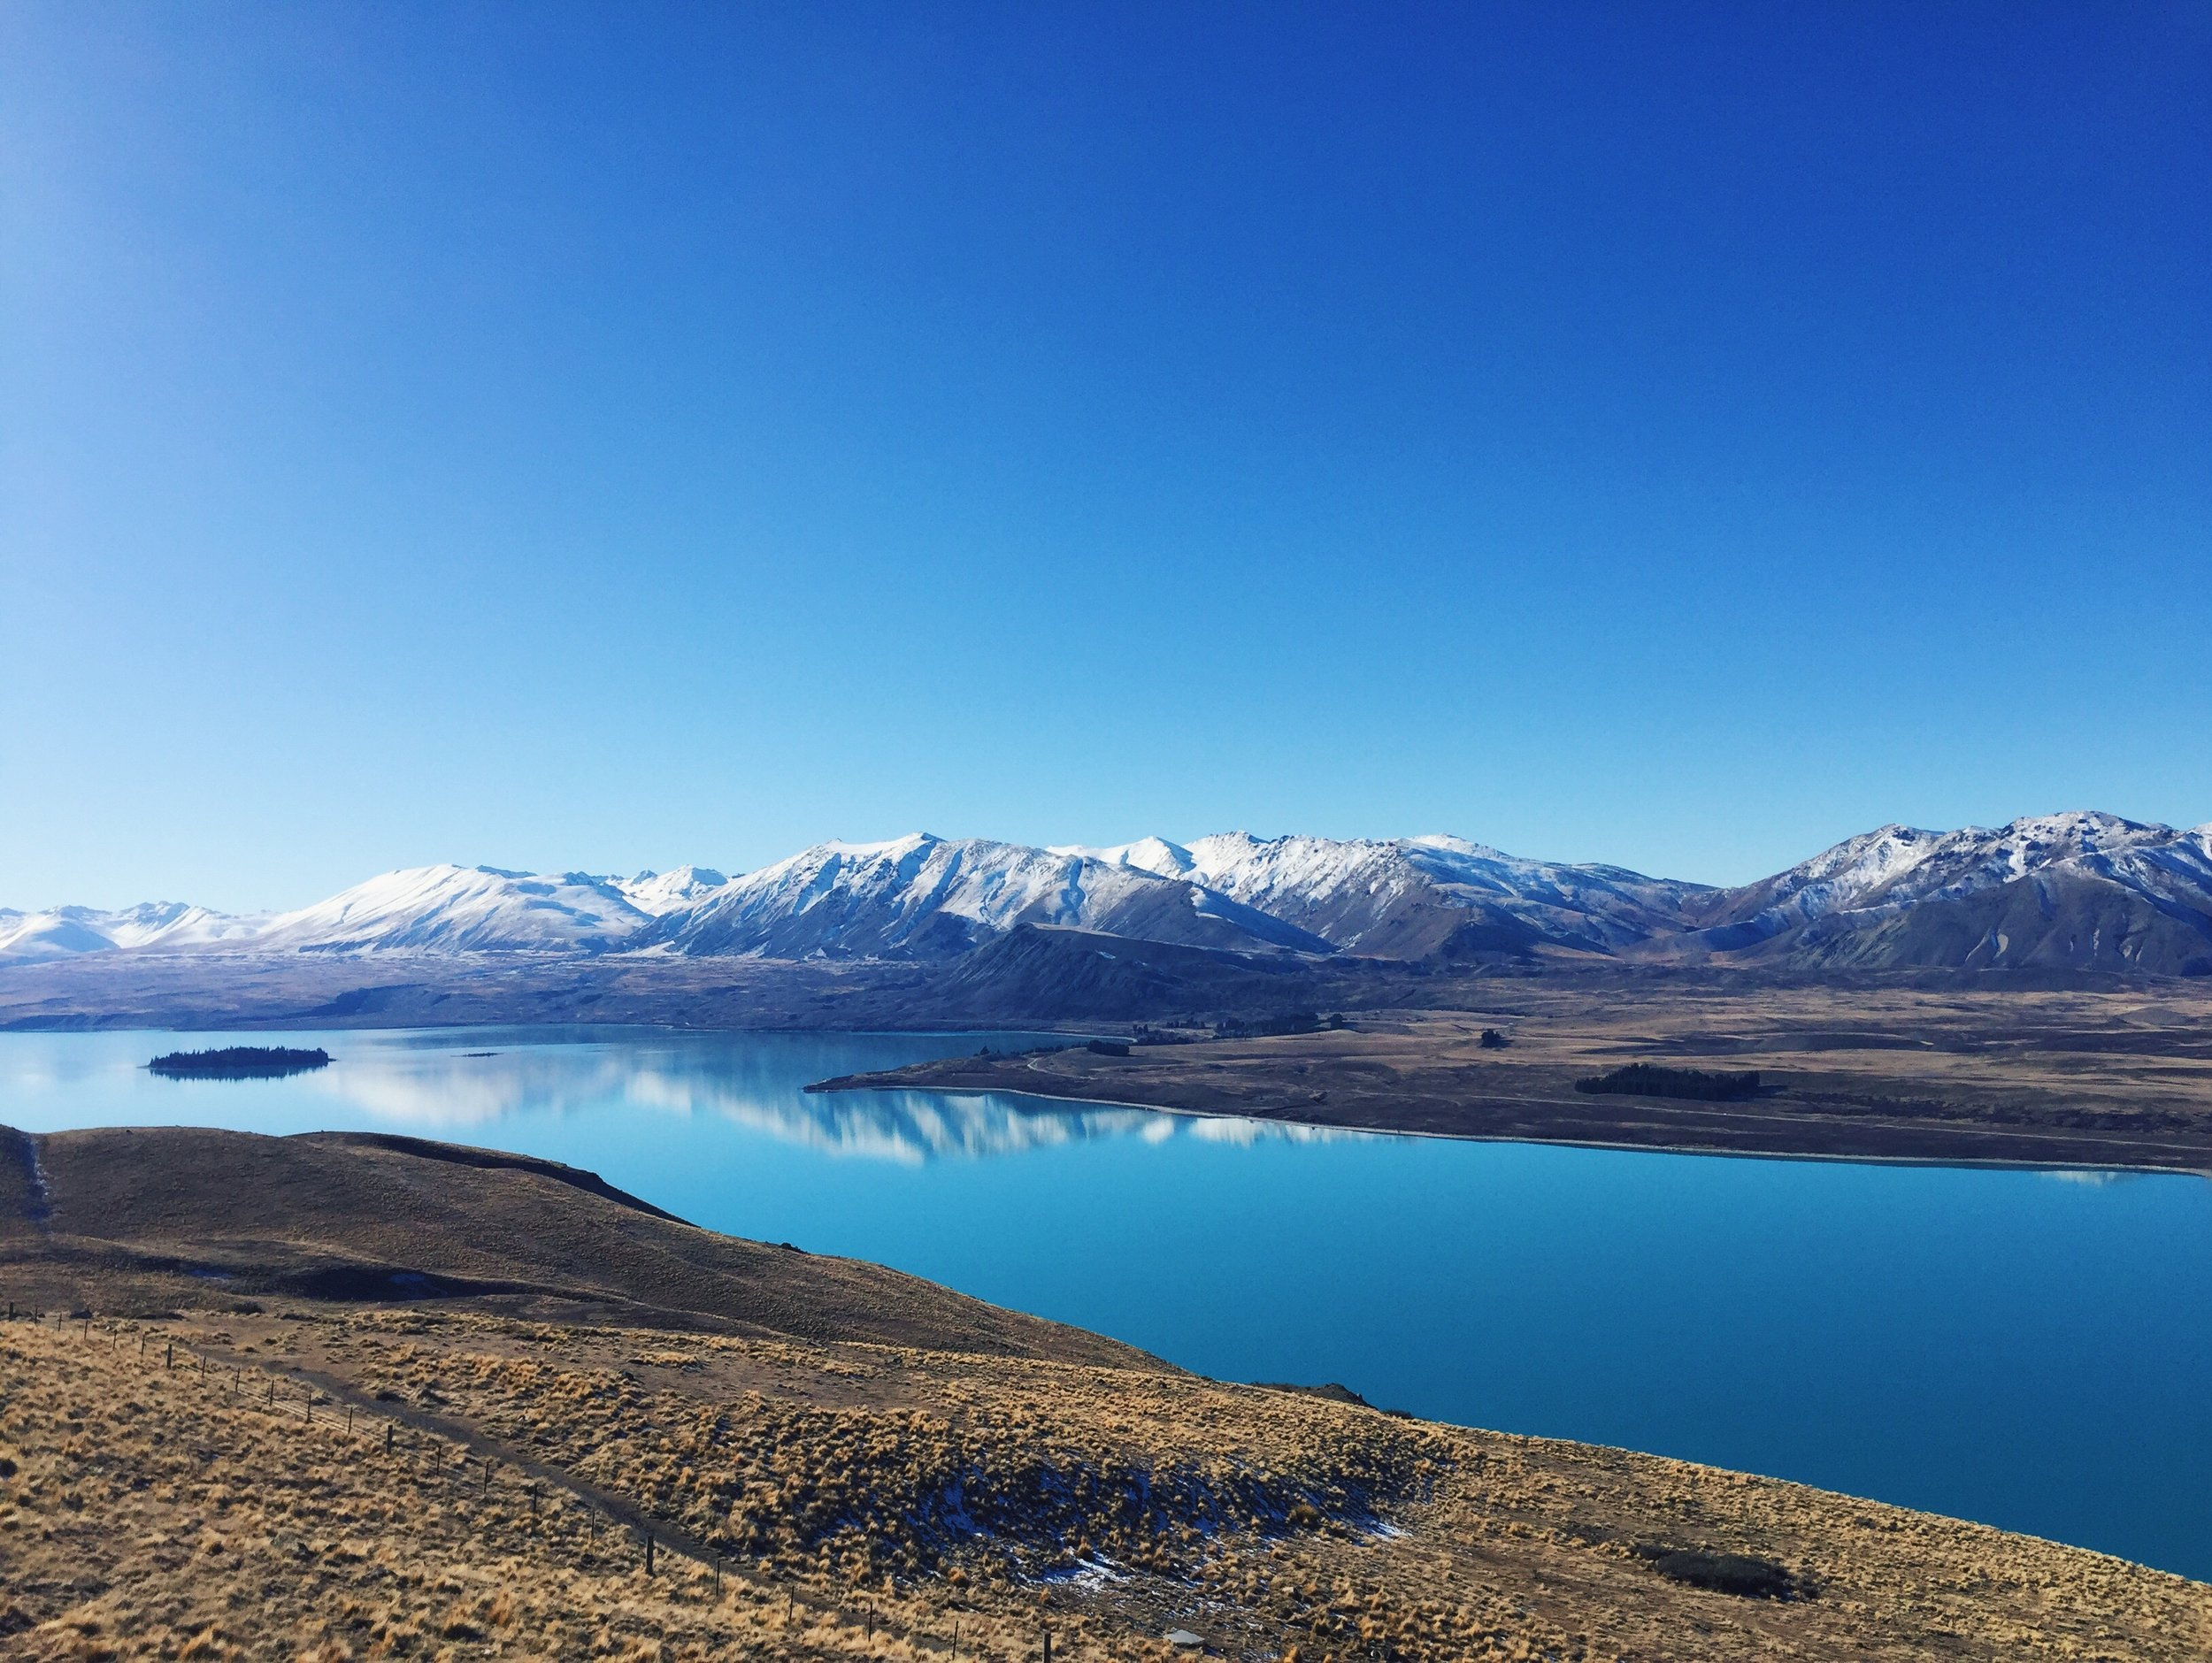 Lake Tekapo as viewed from the Mt. John Observatory